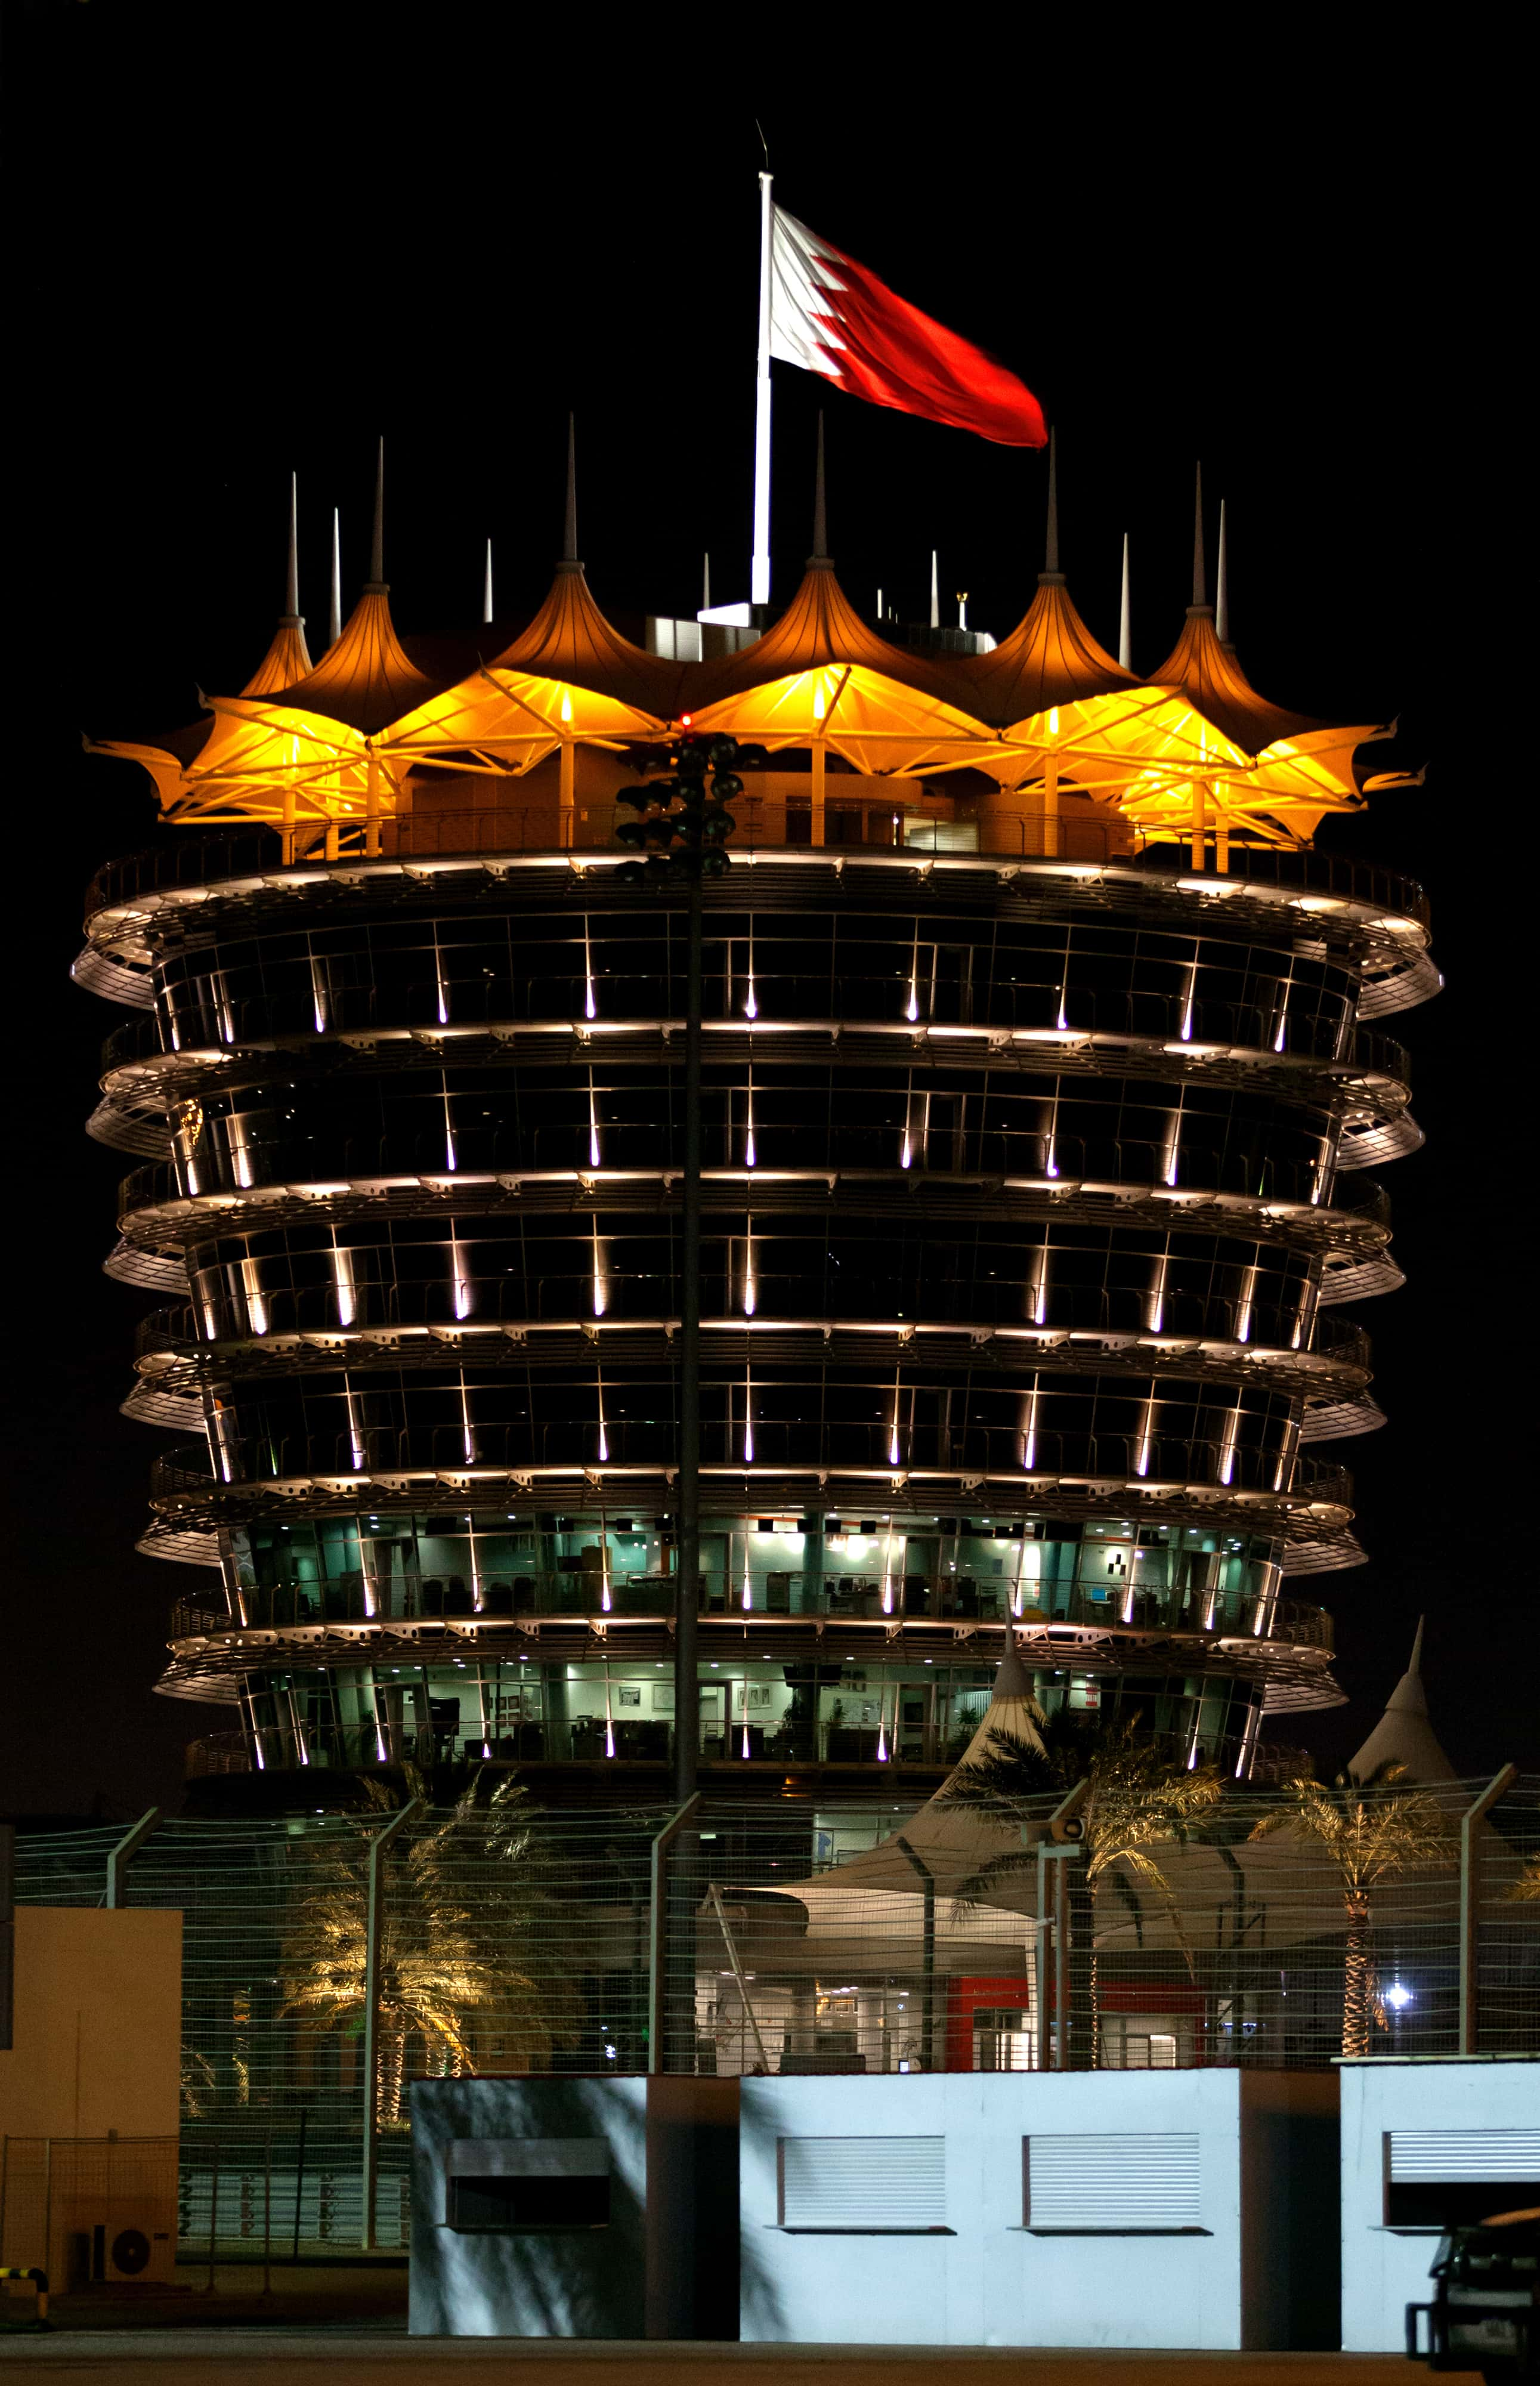 VIVA Bahrain plugs in a state-of-art technology during the F1 at the Bahrain Grand Prix.